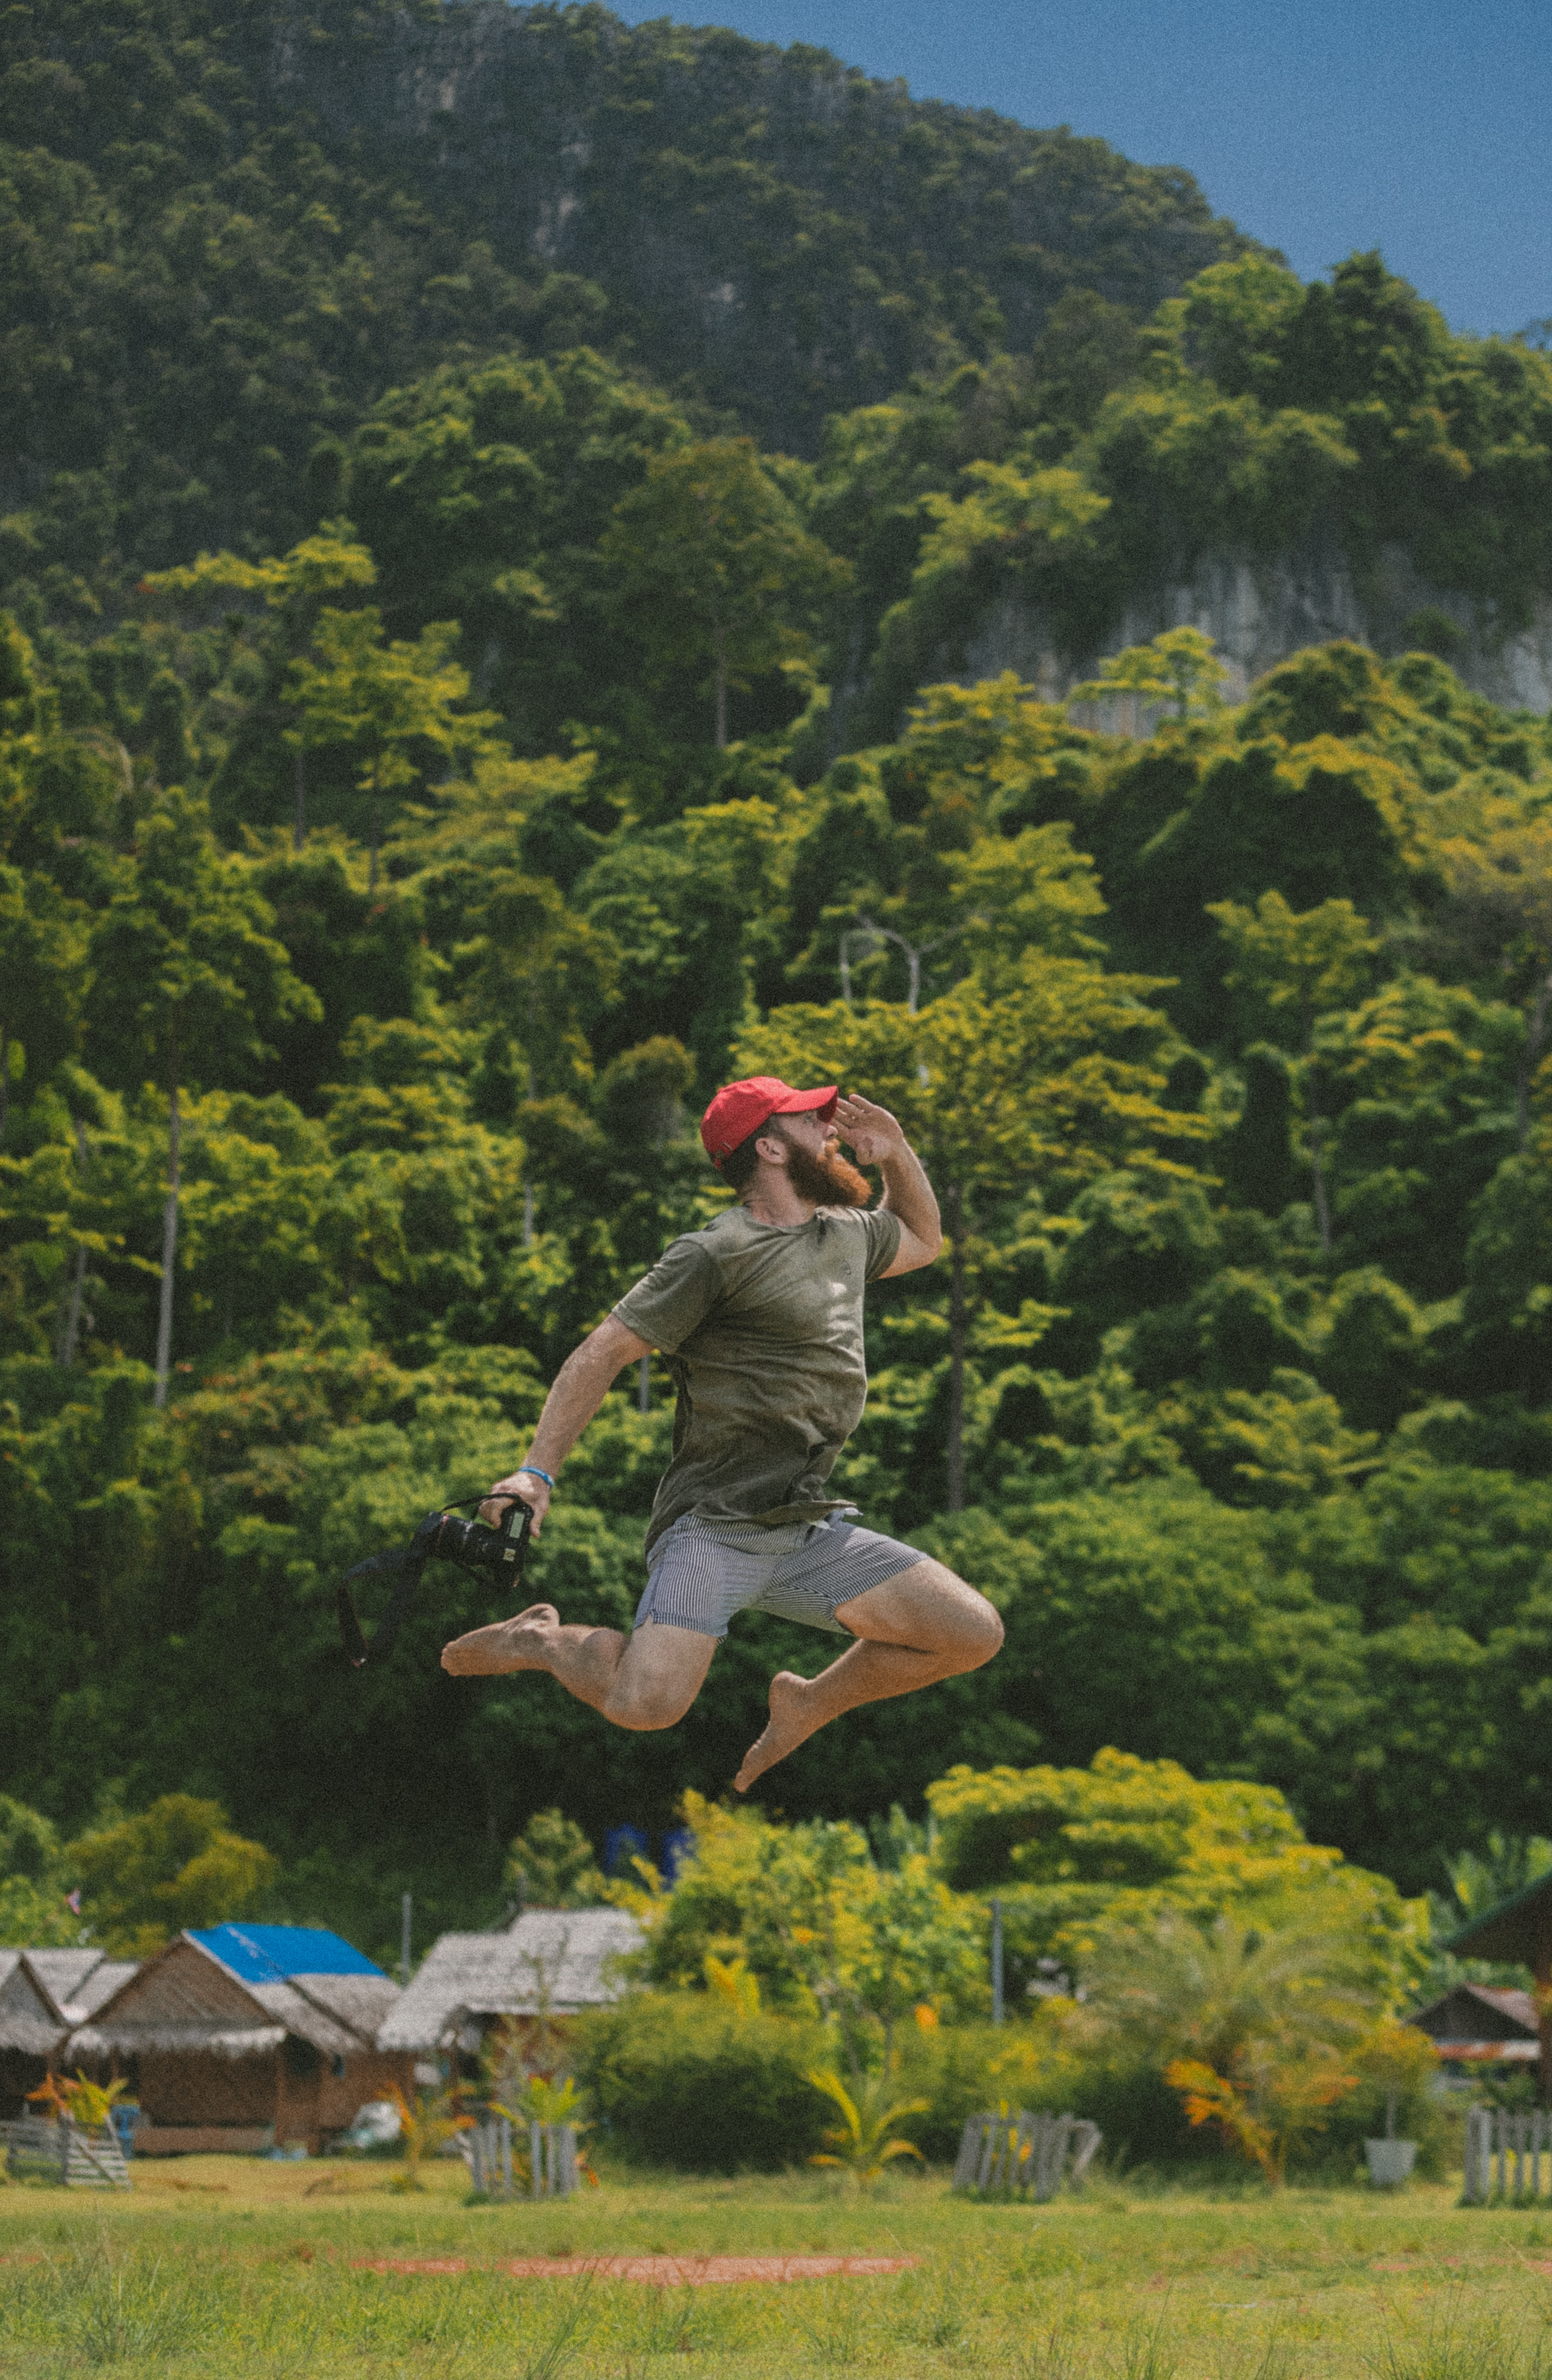 A bearded man in a red baseball cap holding a camera jumps before green hills